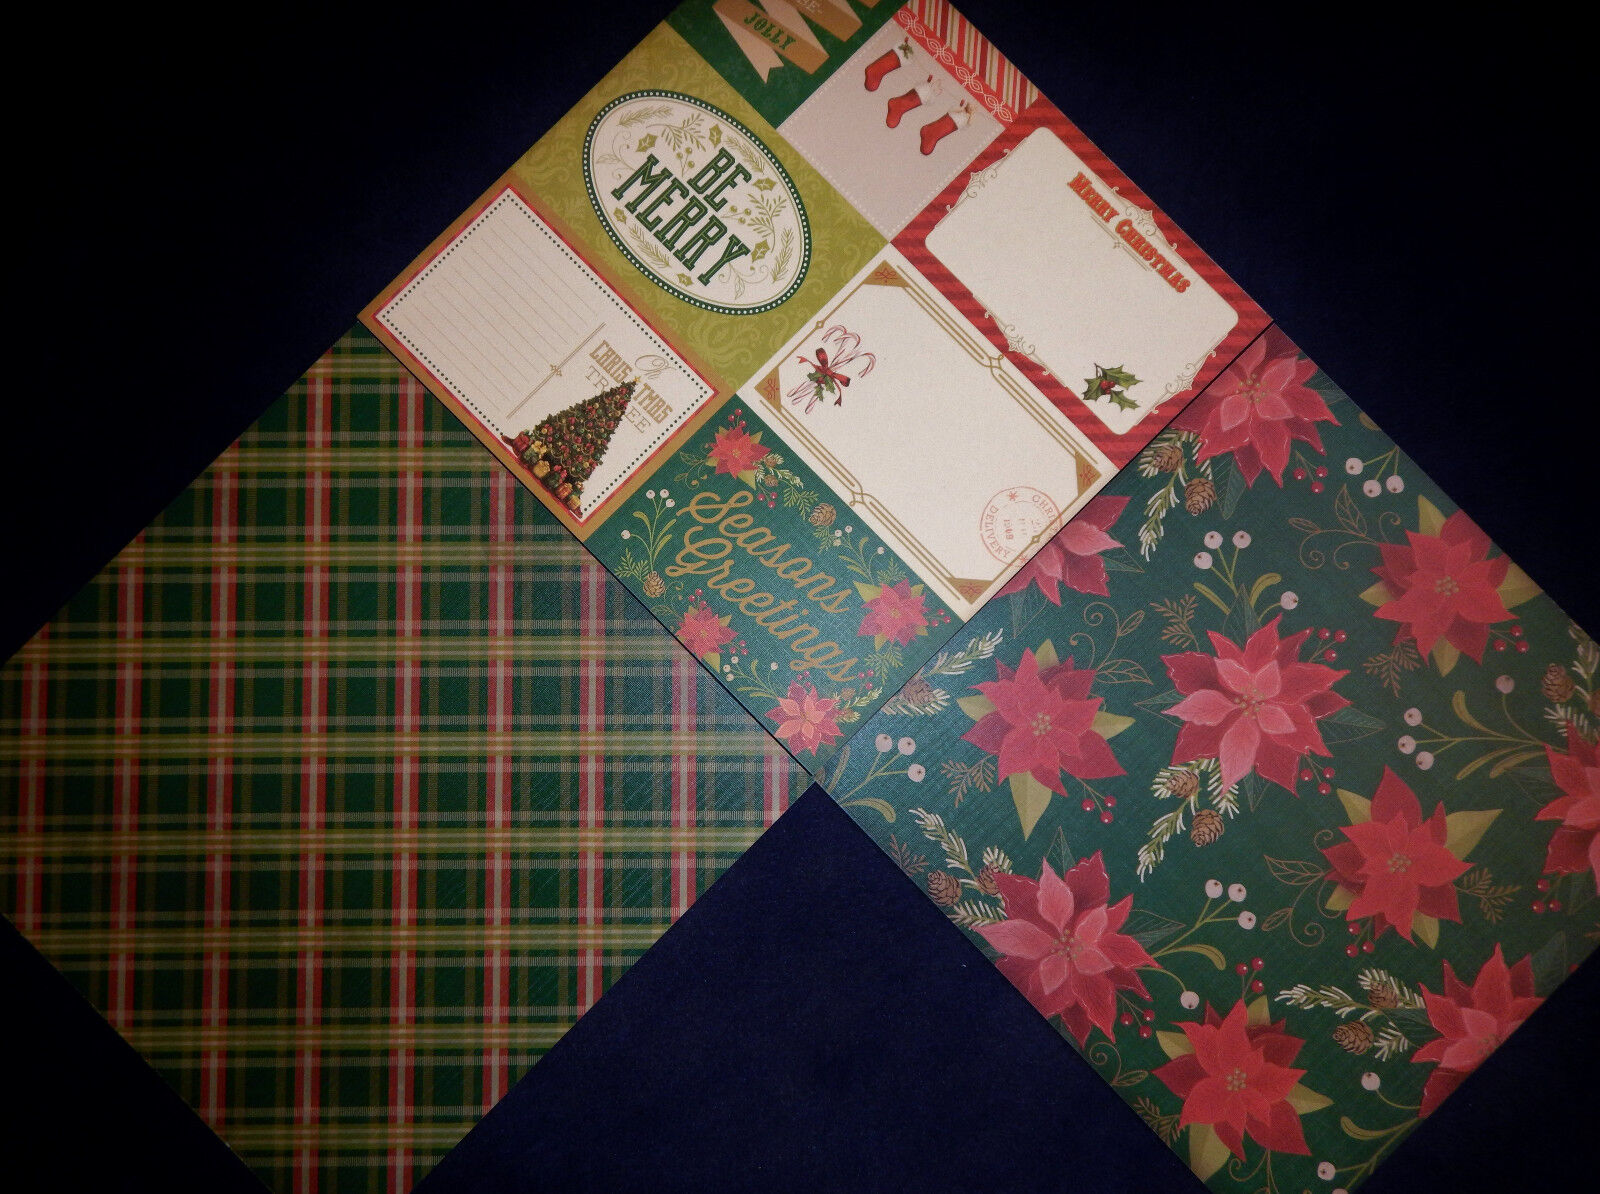 Scrapbook paper cardstock - 12x12 Scrapbook Paper Cardstock Old Olde Time Christmas Holiday Classic 24 Lot 2 2 Of 9